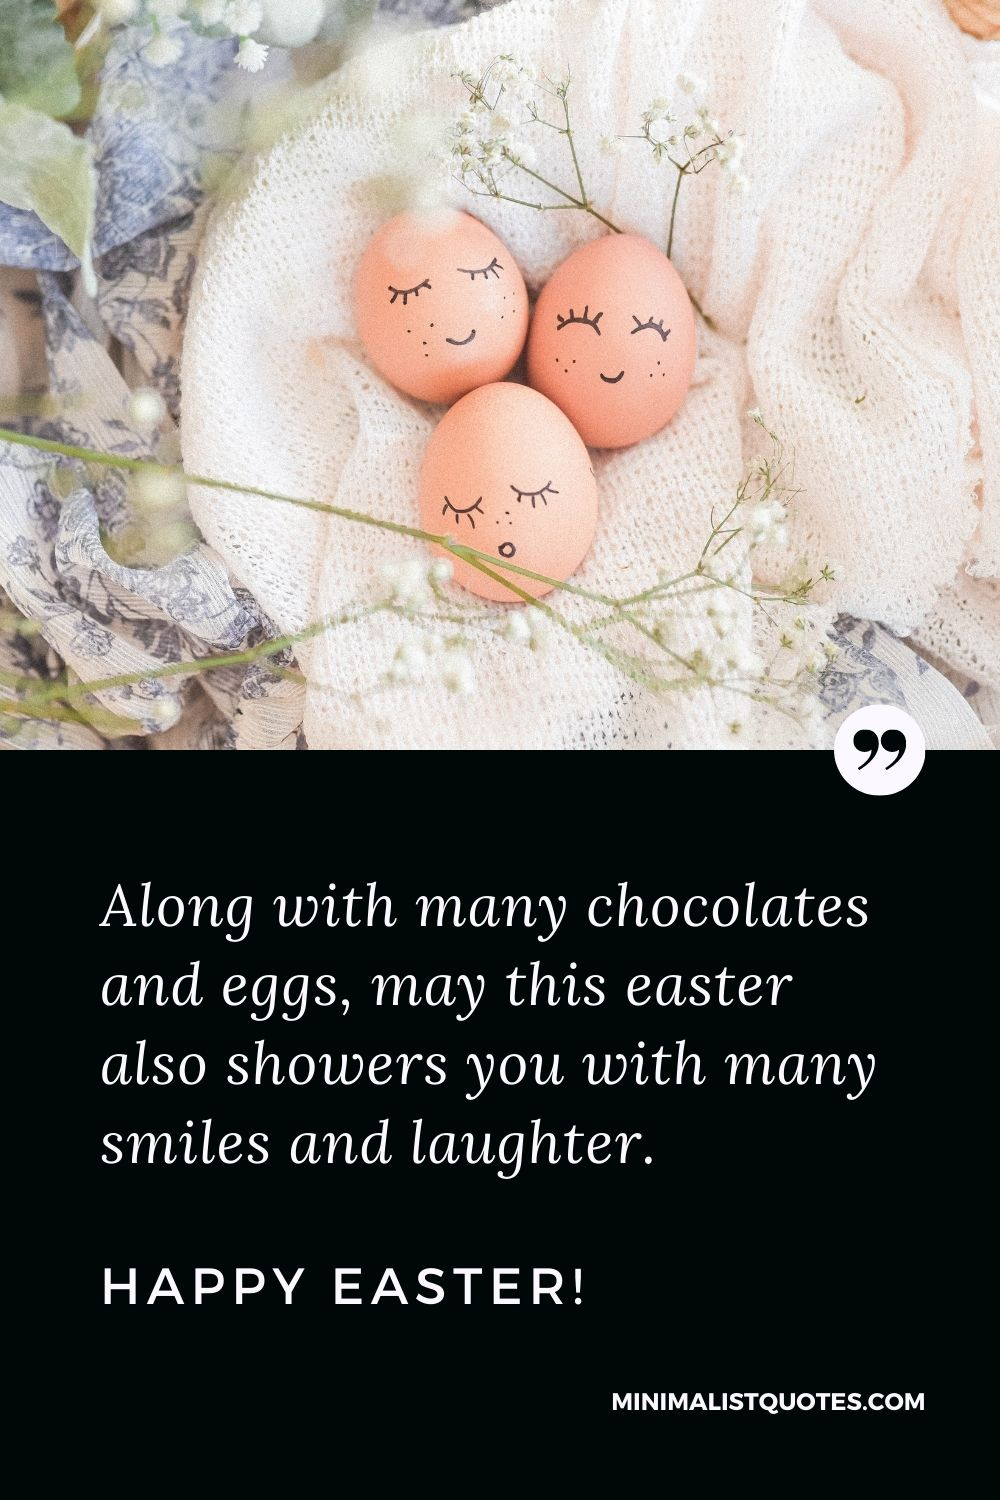 Easter Quote, Wish & Message With Image: Along with many chocolates and eggs, may this easter also showers you with many smiles and laughter. Happy Easter!